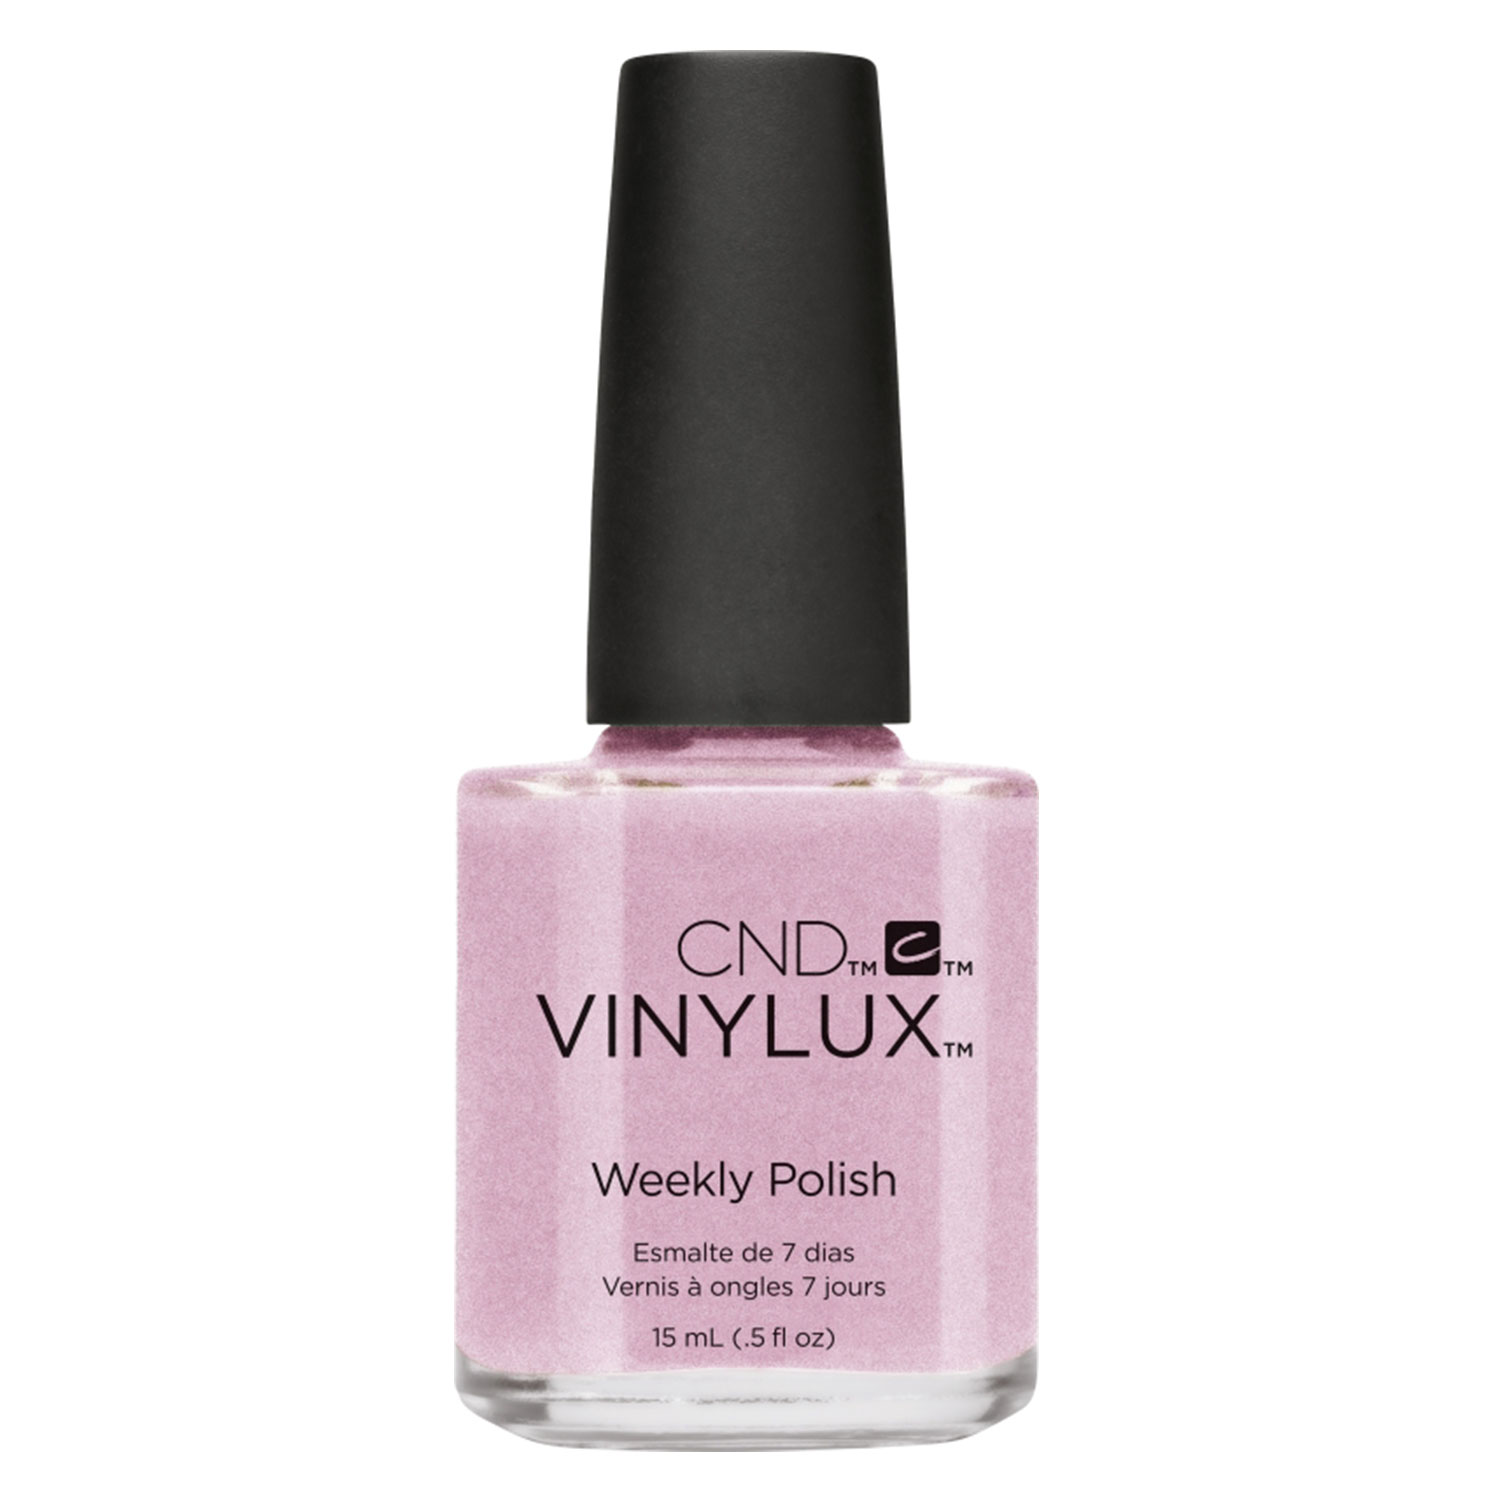 Vinylux - Weekly Polish Lavender Lace 216